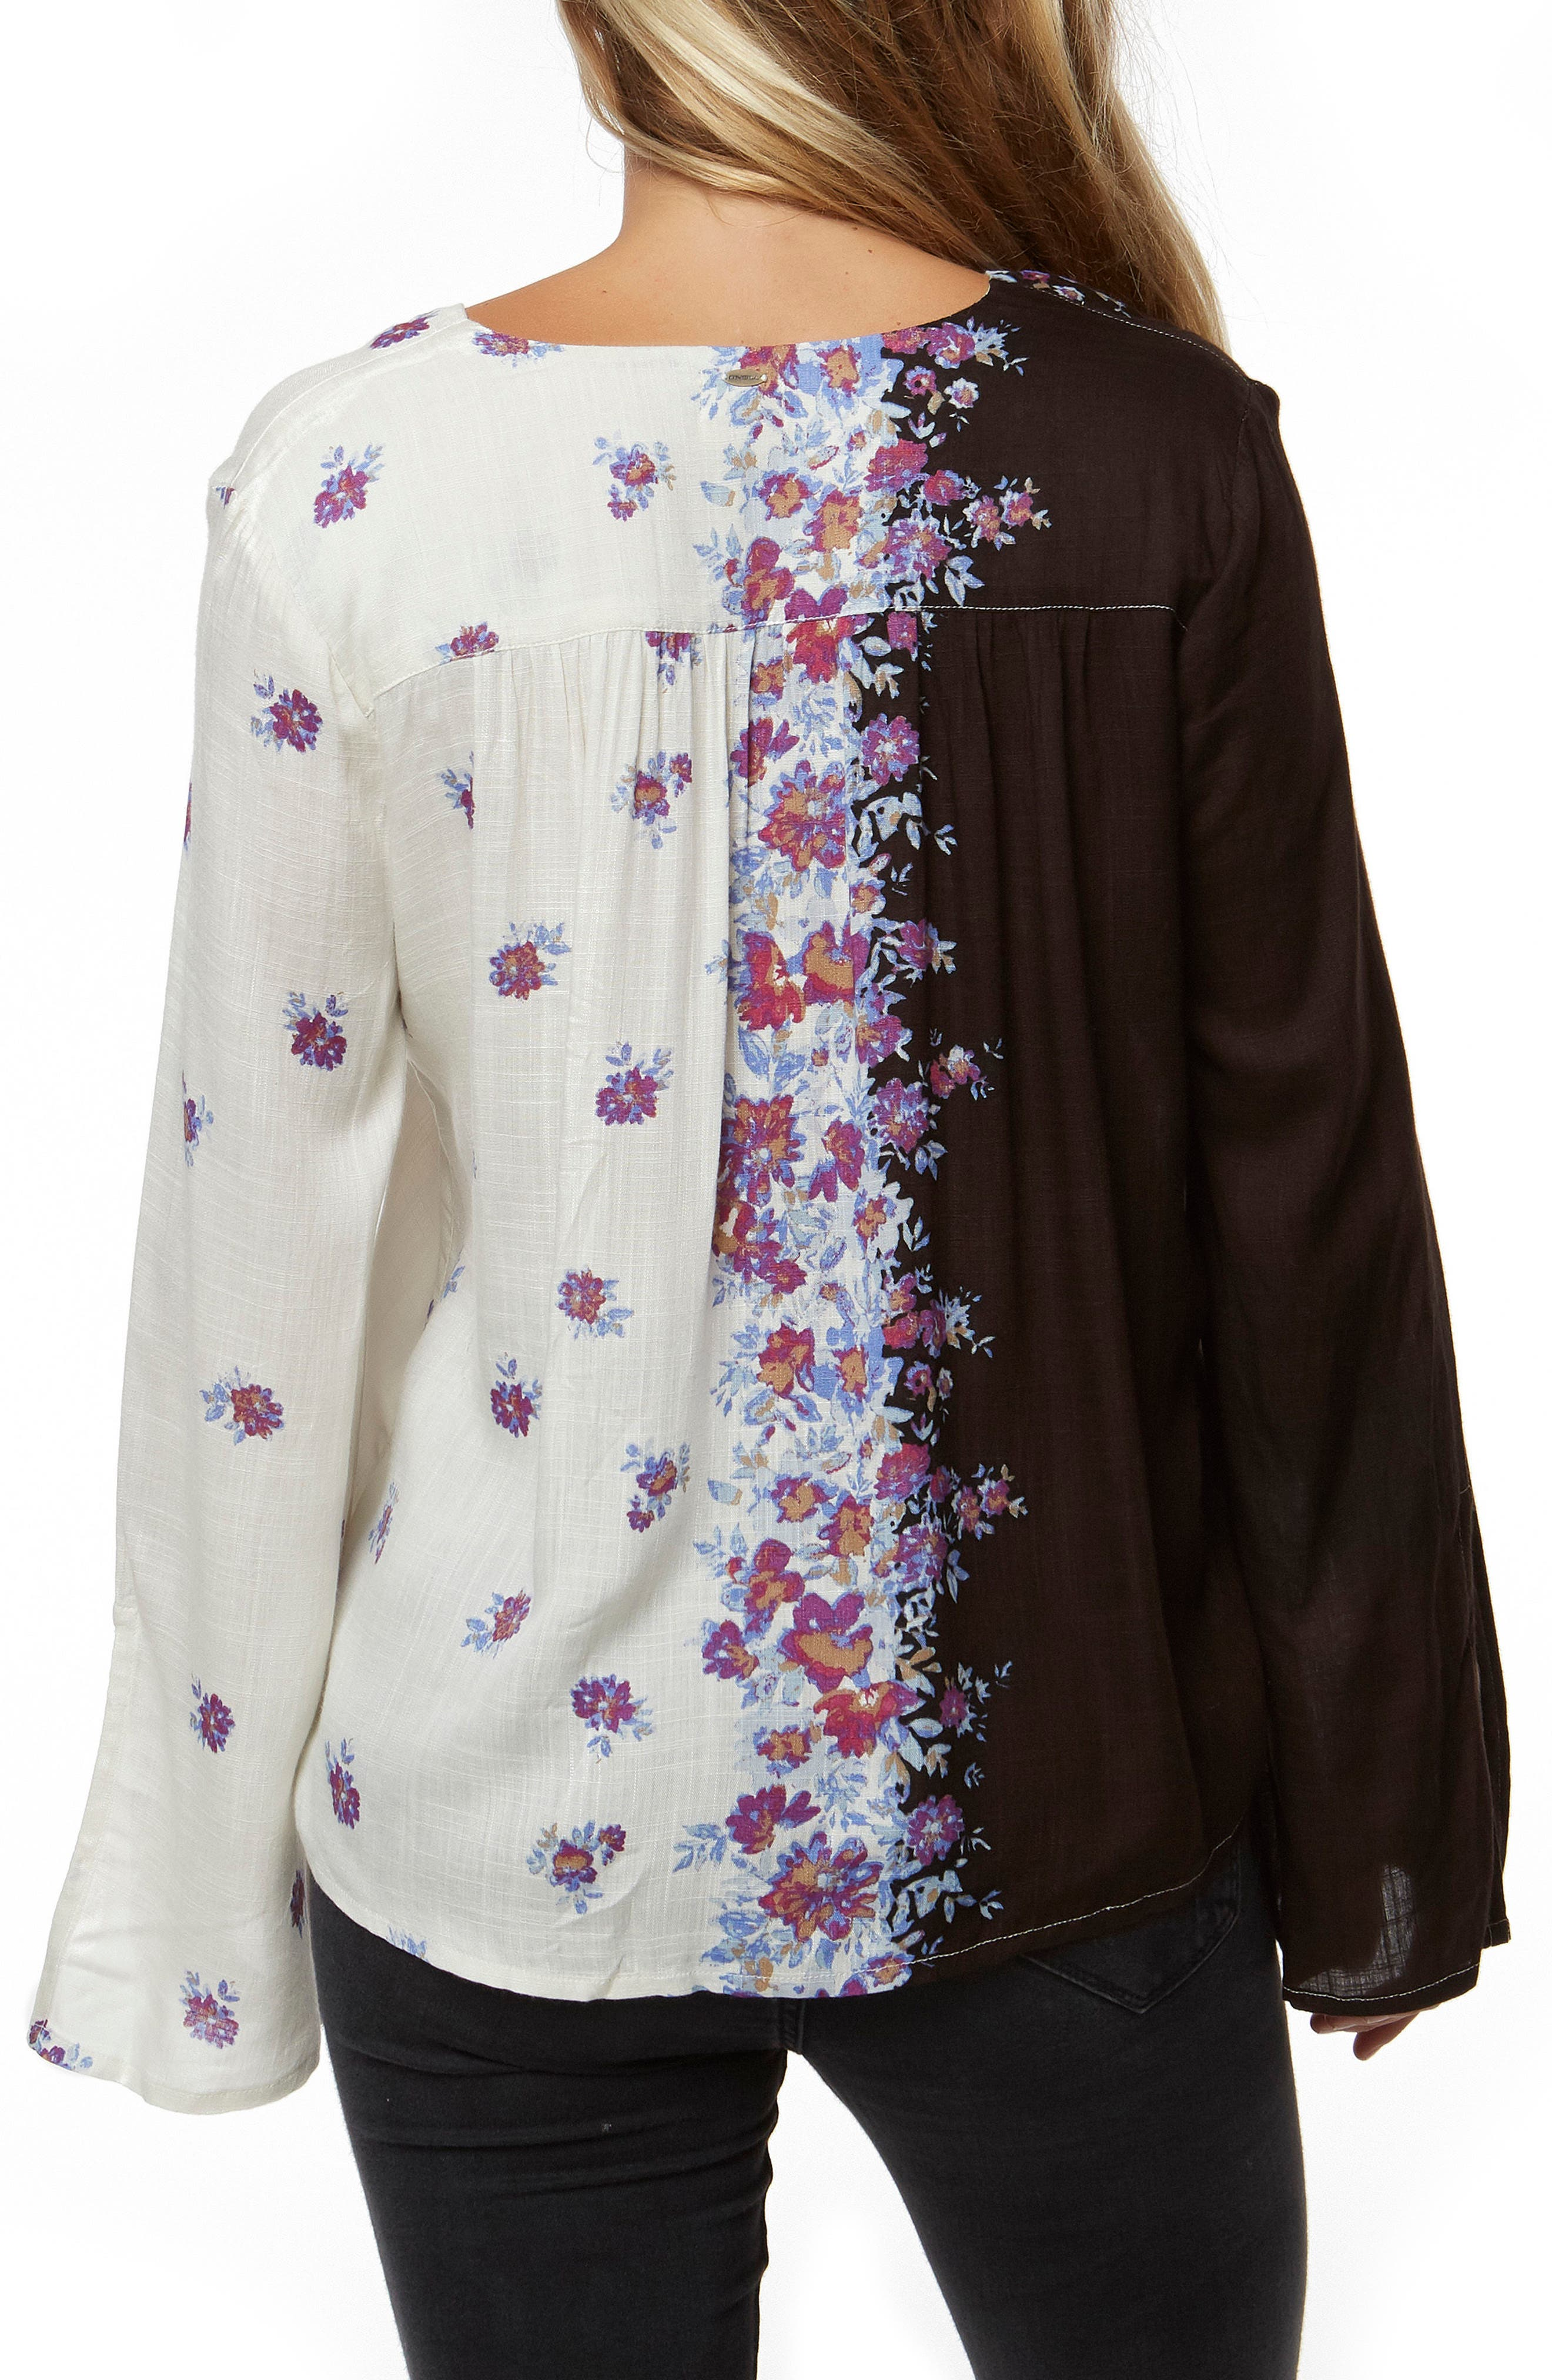 Charley Floral Print Top,                             Alternate thumbnail 2, color,                             001